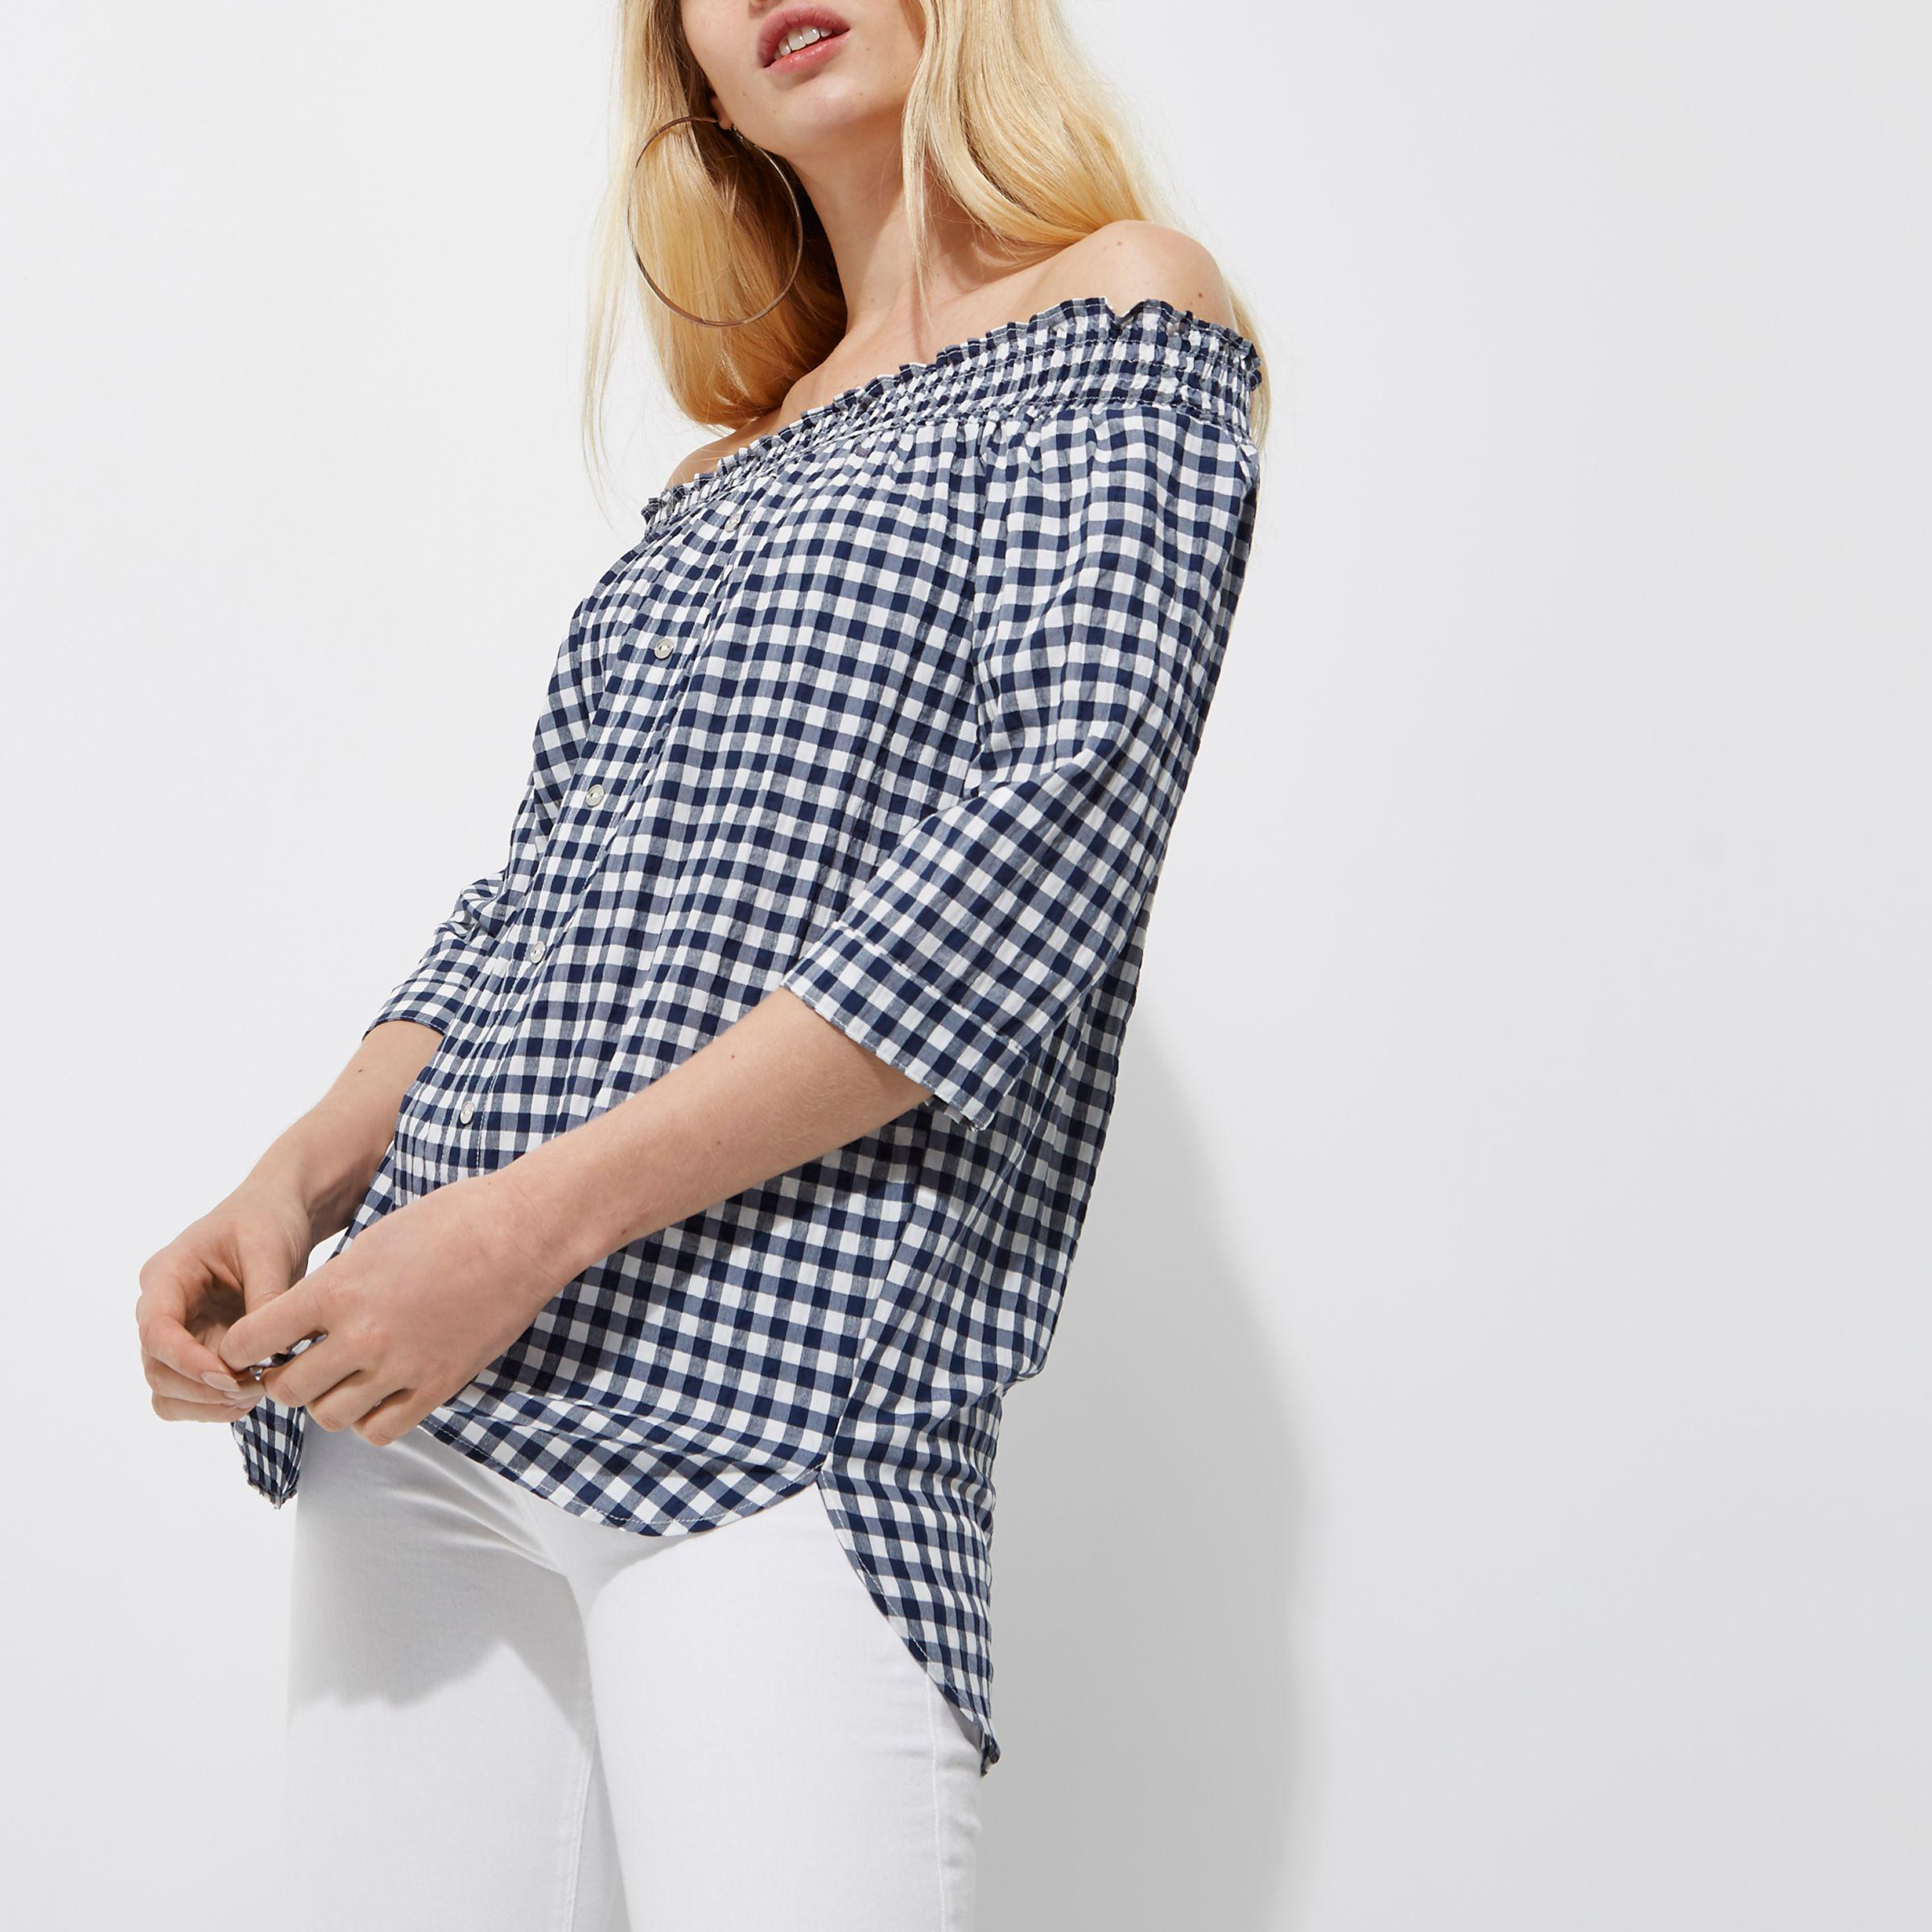 be8974ac8eb22a Lyst - River Island Navy Gingham Shirred Bardot Top in Blue